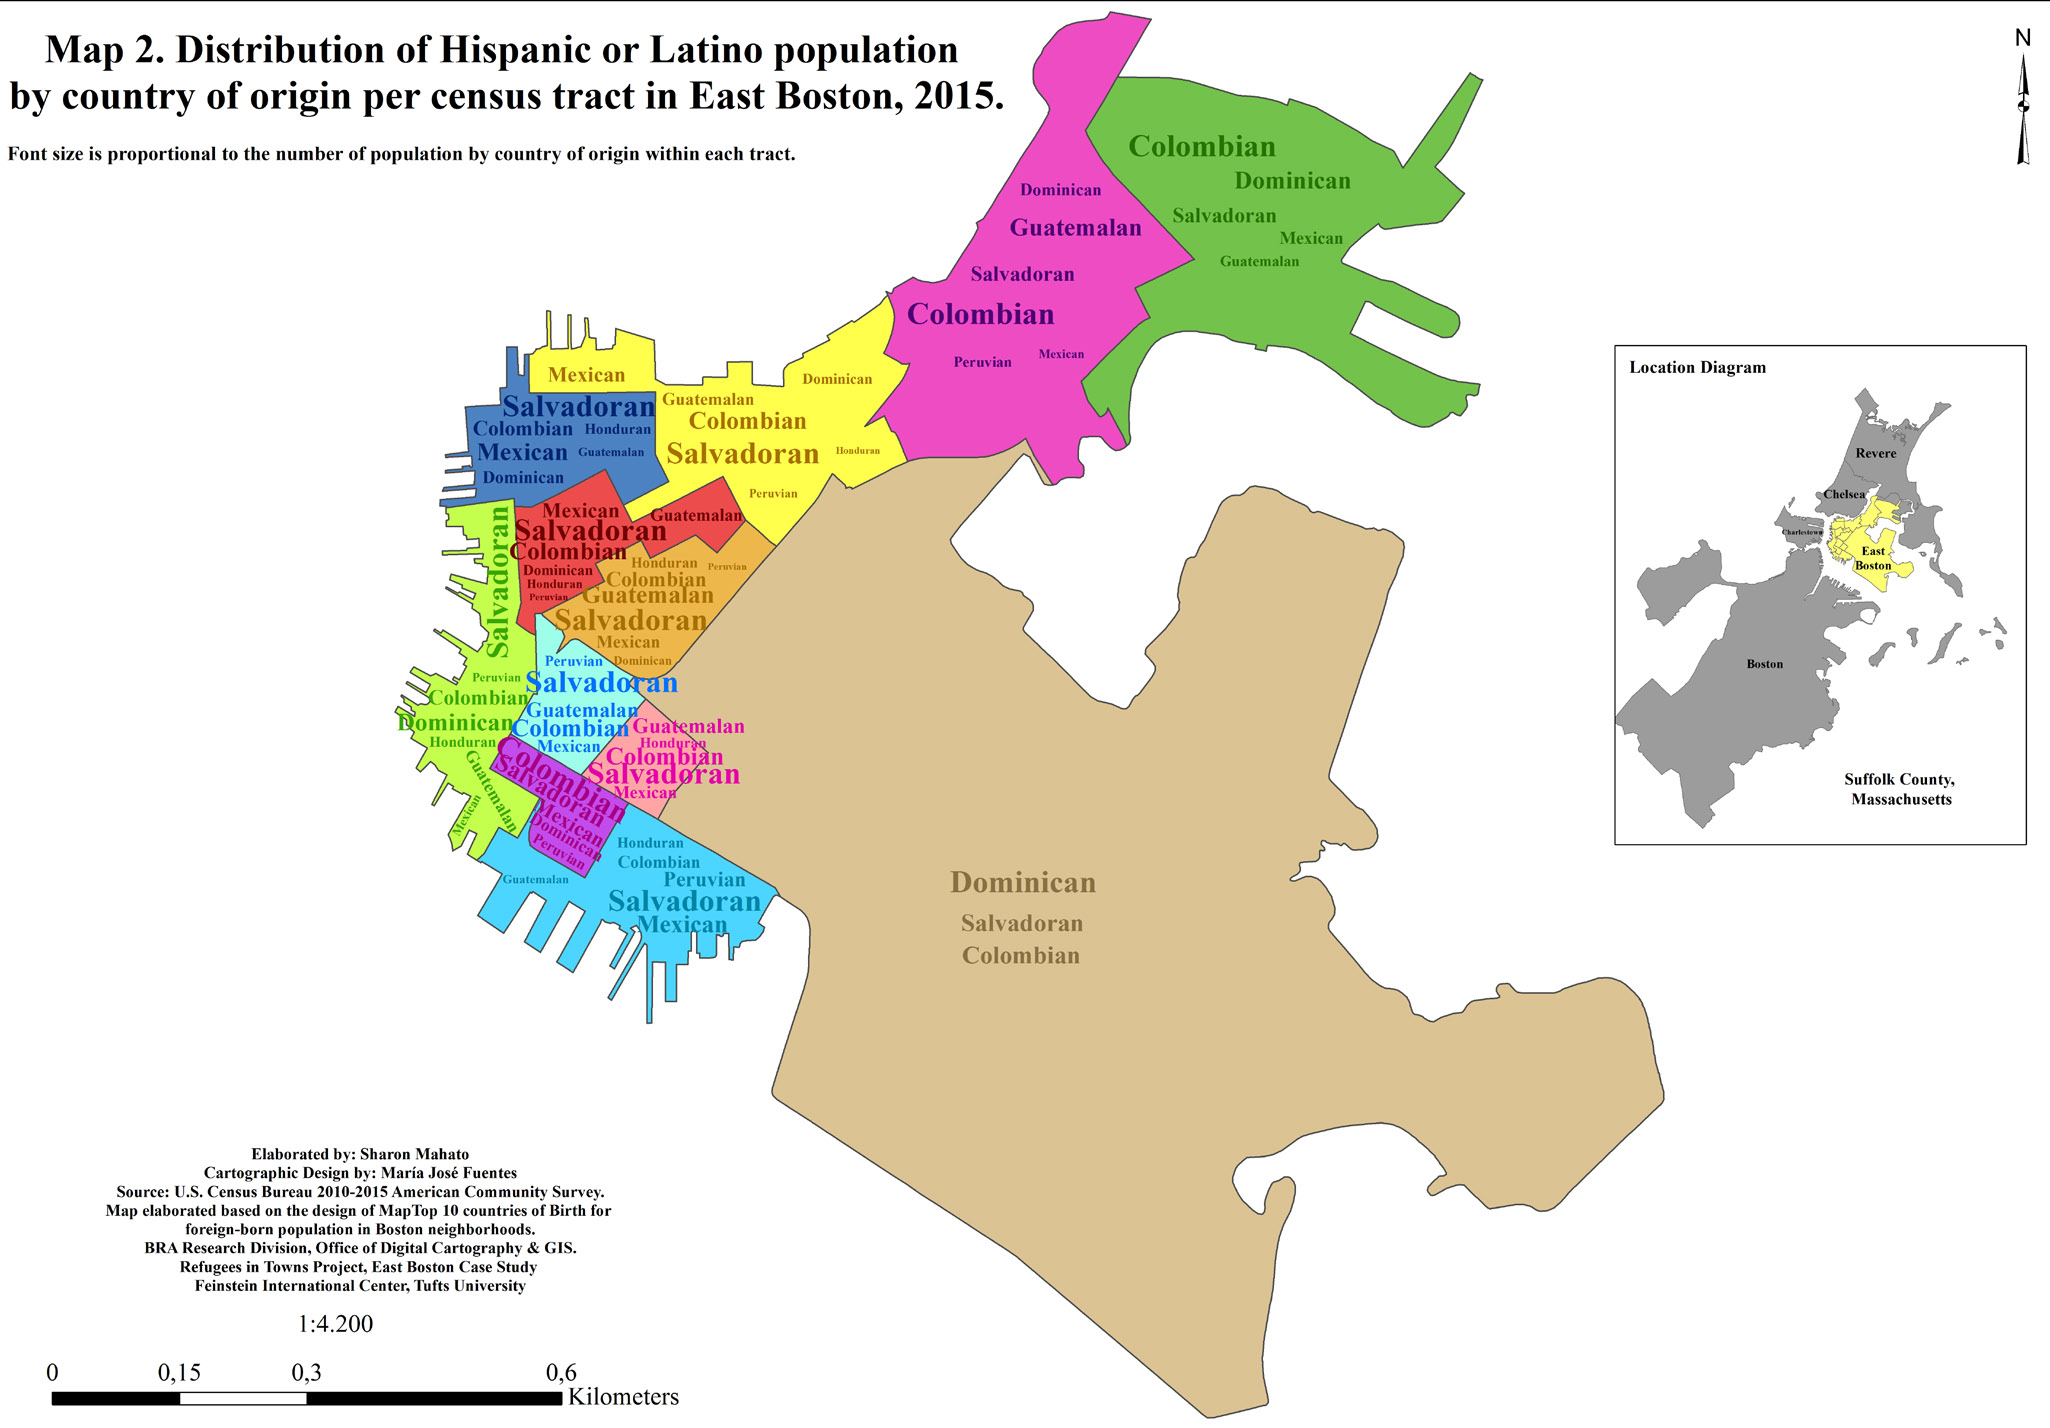 Distribution of Hispanic or Latino population by country of origin per census tract in East Boston, 2015. Map by author. Data from U.S. Census Bureau.